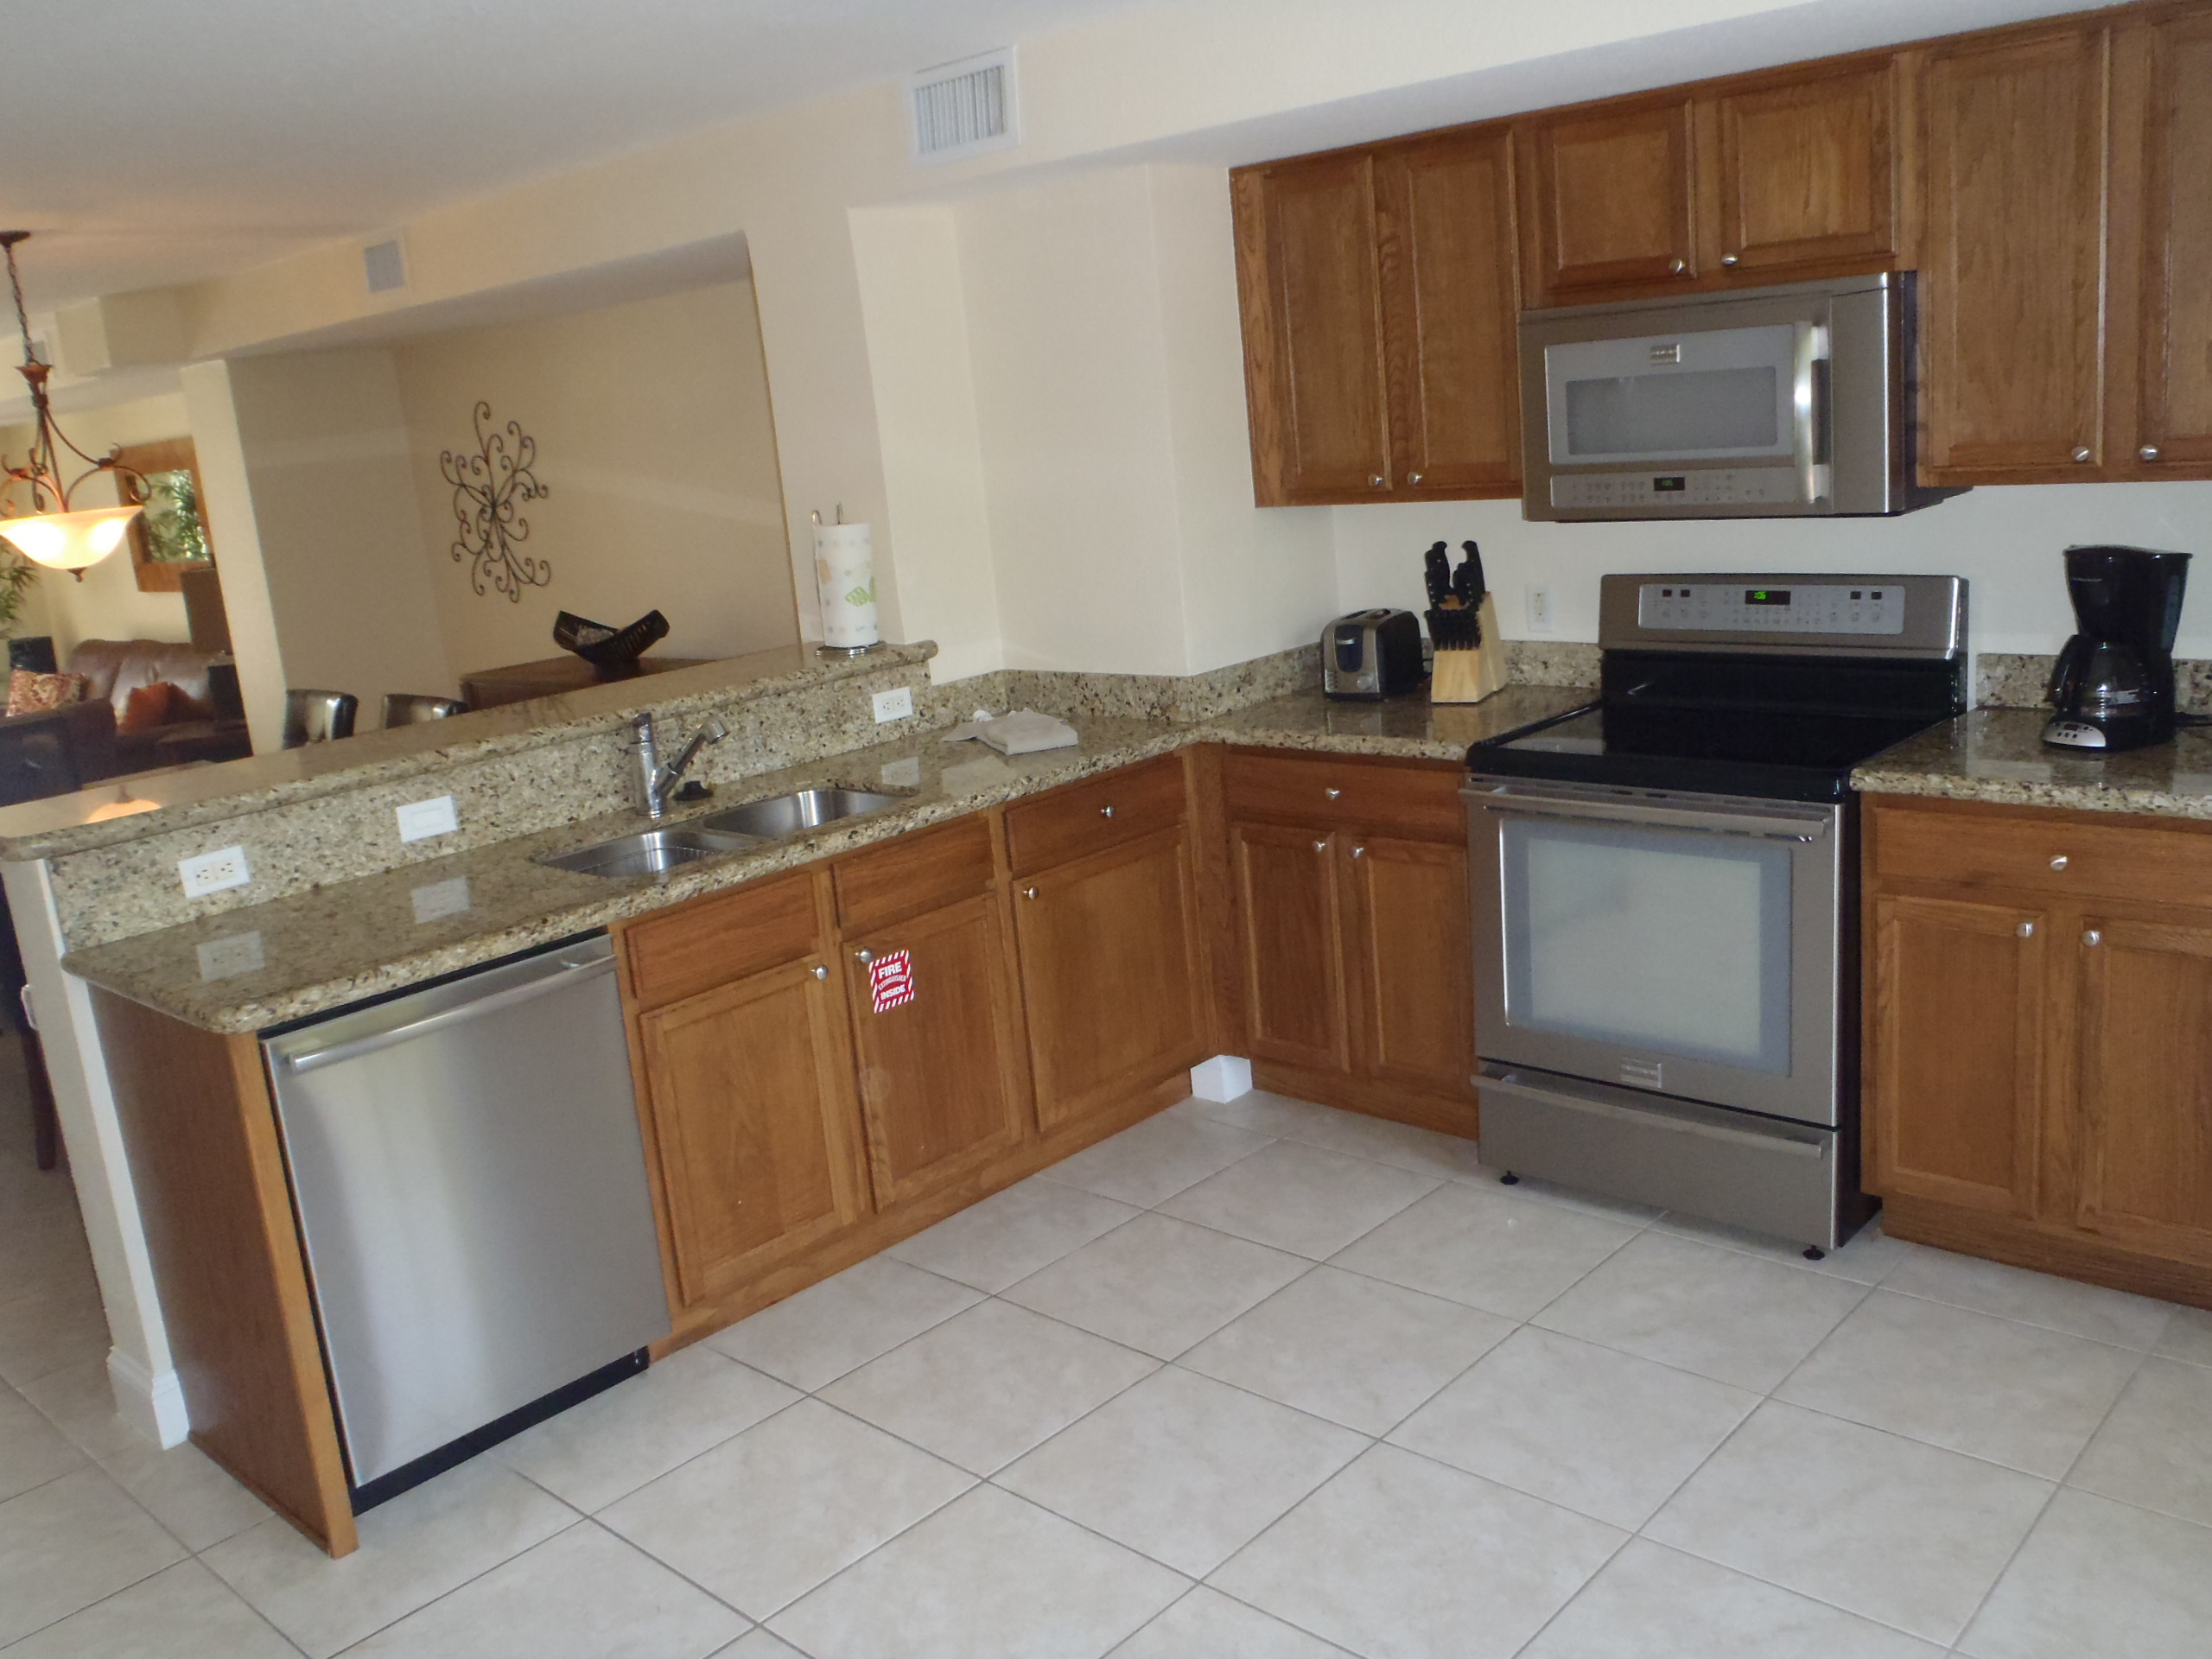 Kitchen appliance suites stainless steel all about kitchen - Hhgregg appliances home kitchen ...